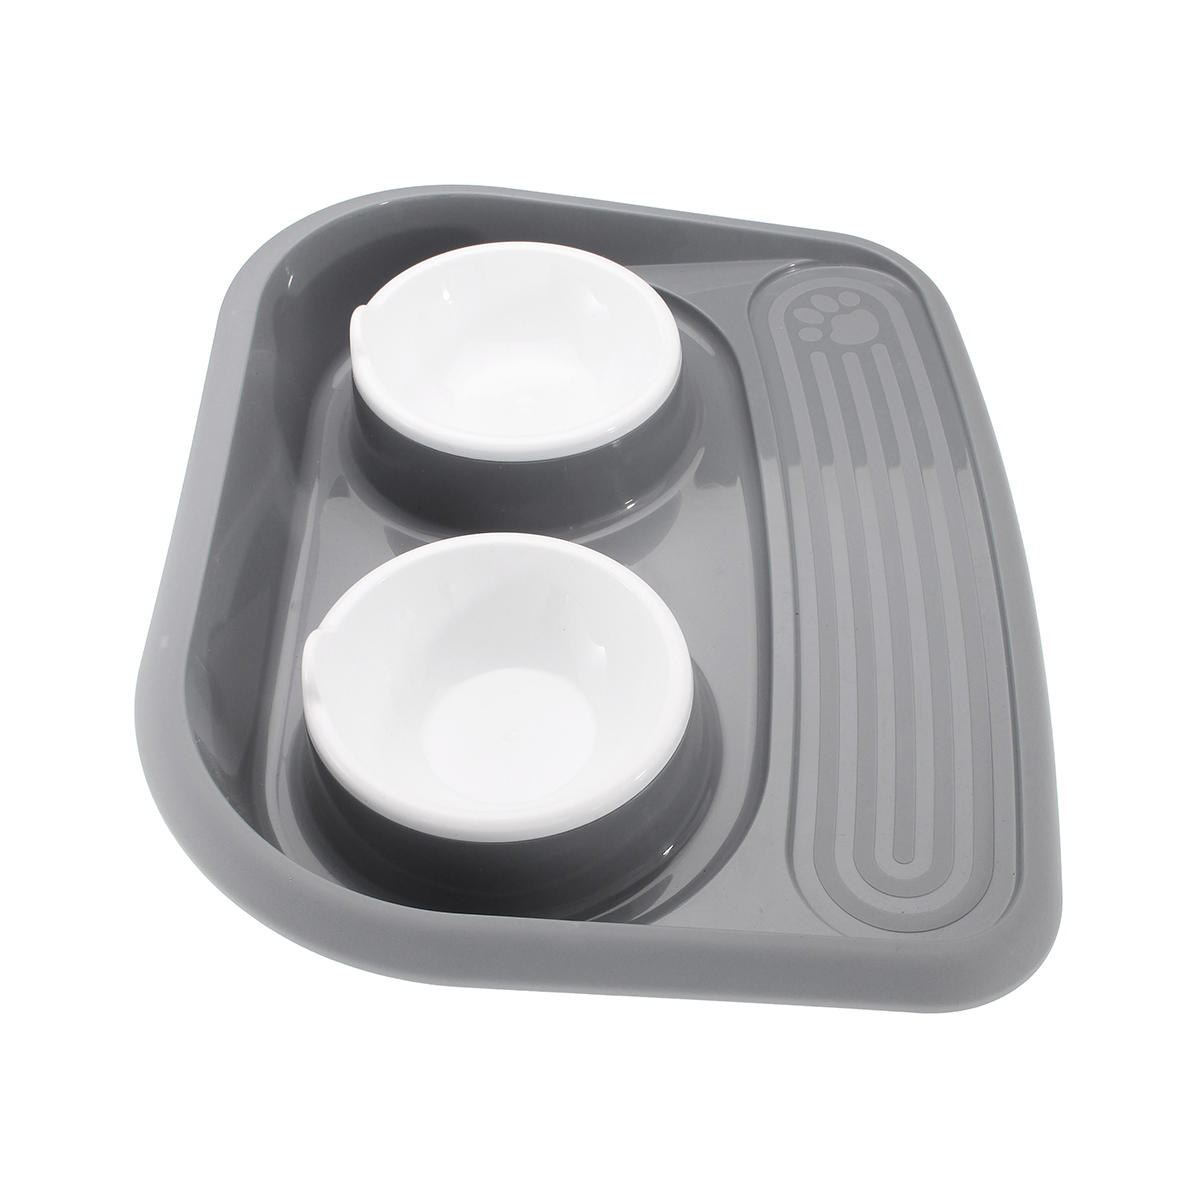 Plastic Pets Feeder Bowl DogCat Feed Drink Double Dish Food Water Splash Proof Pet Bowl